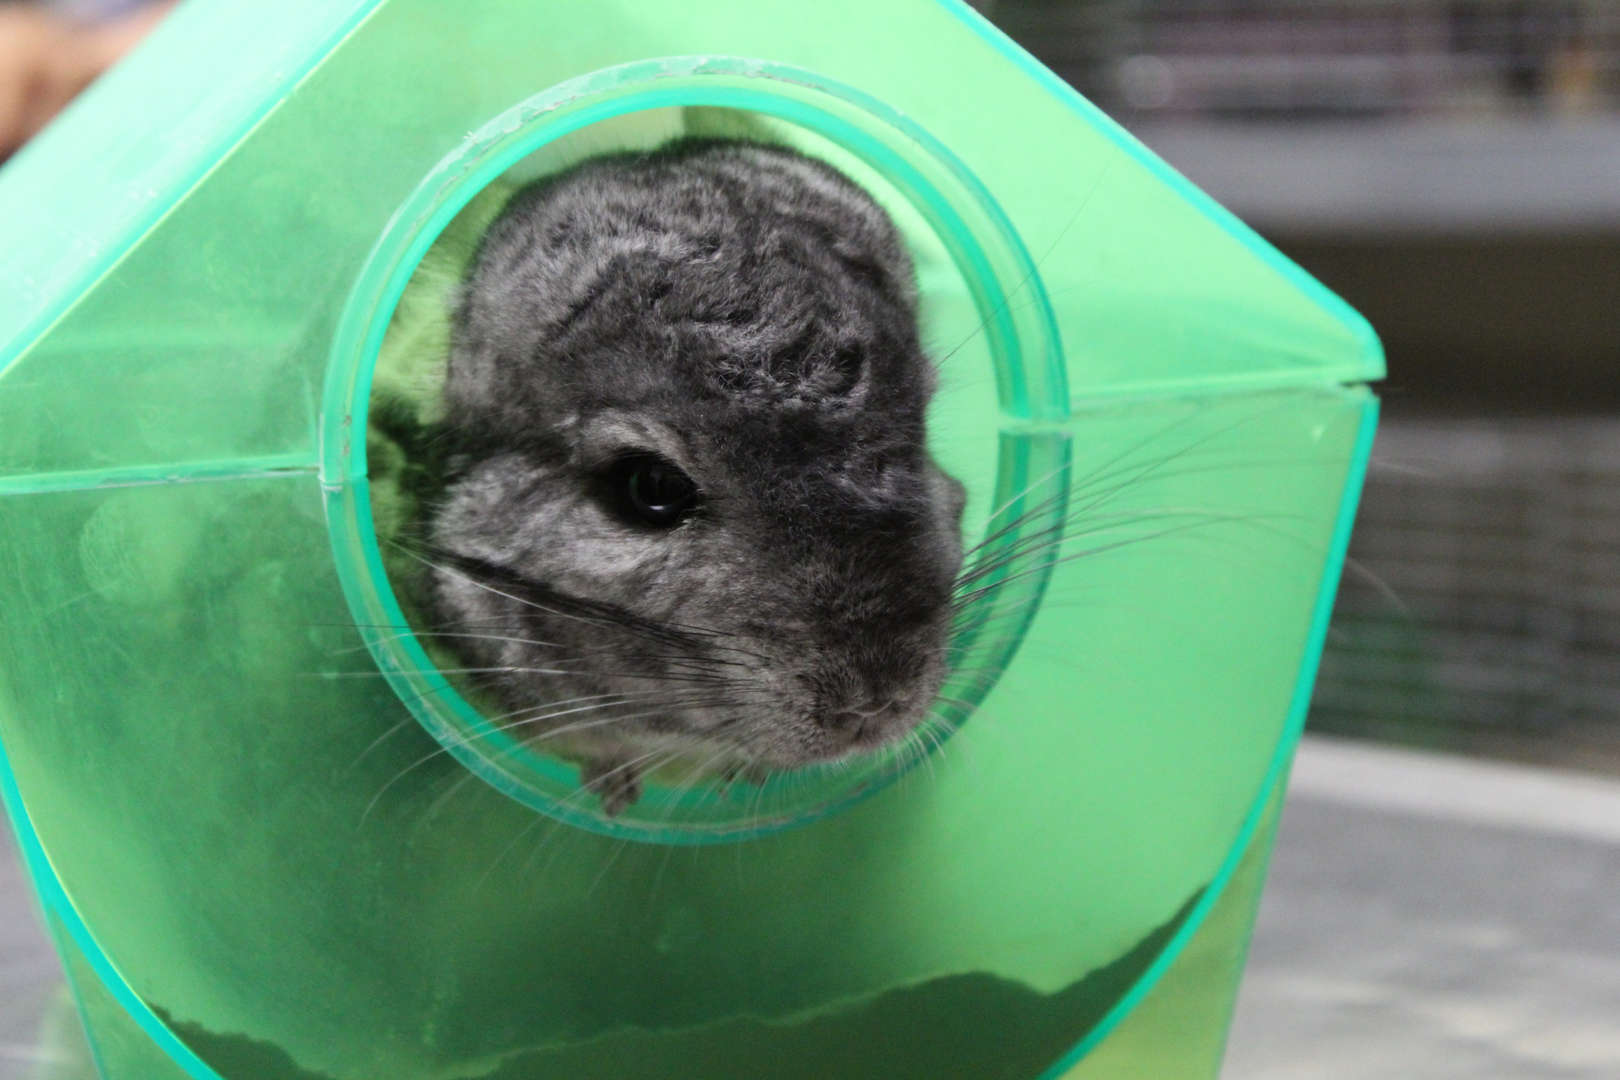 Gray chinchilla peeking out of a green container